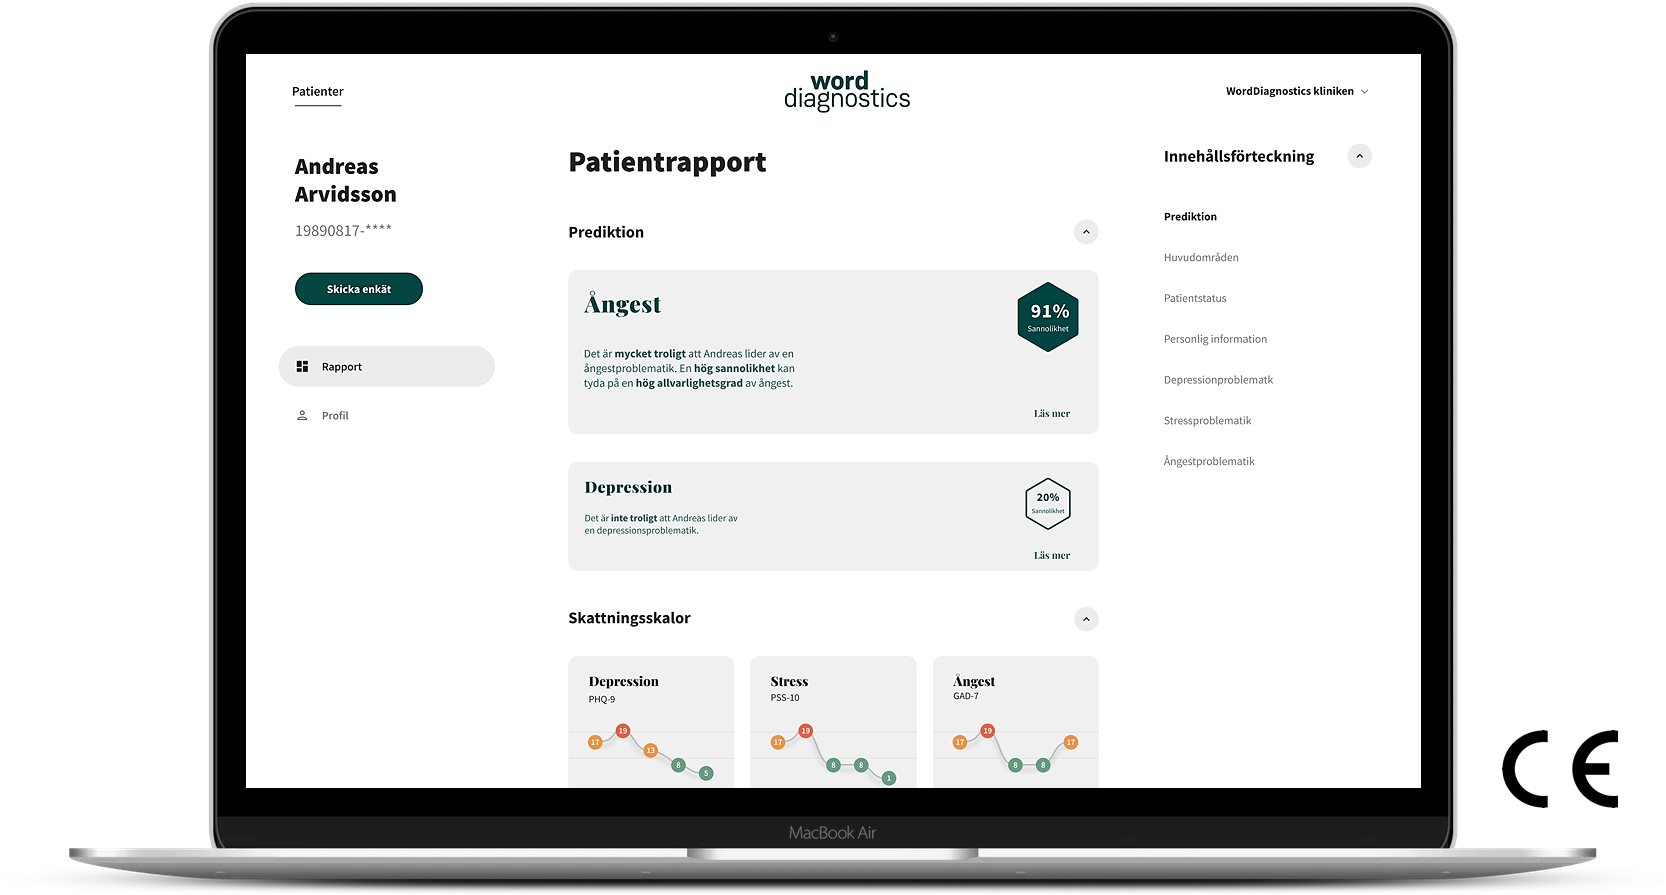 WordDiagnostics Patient Report